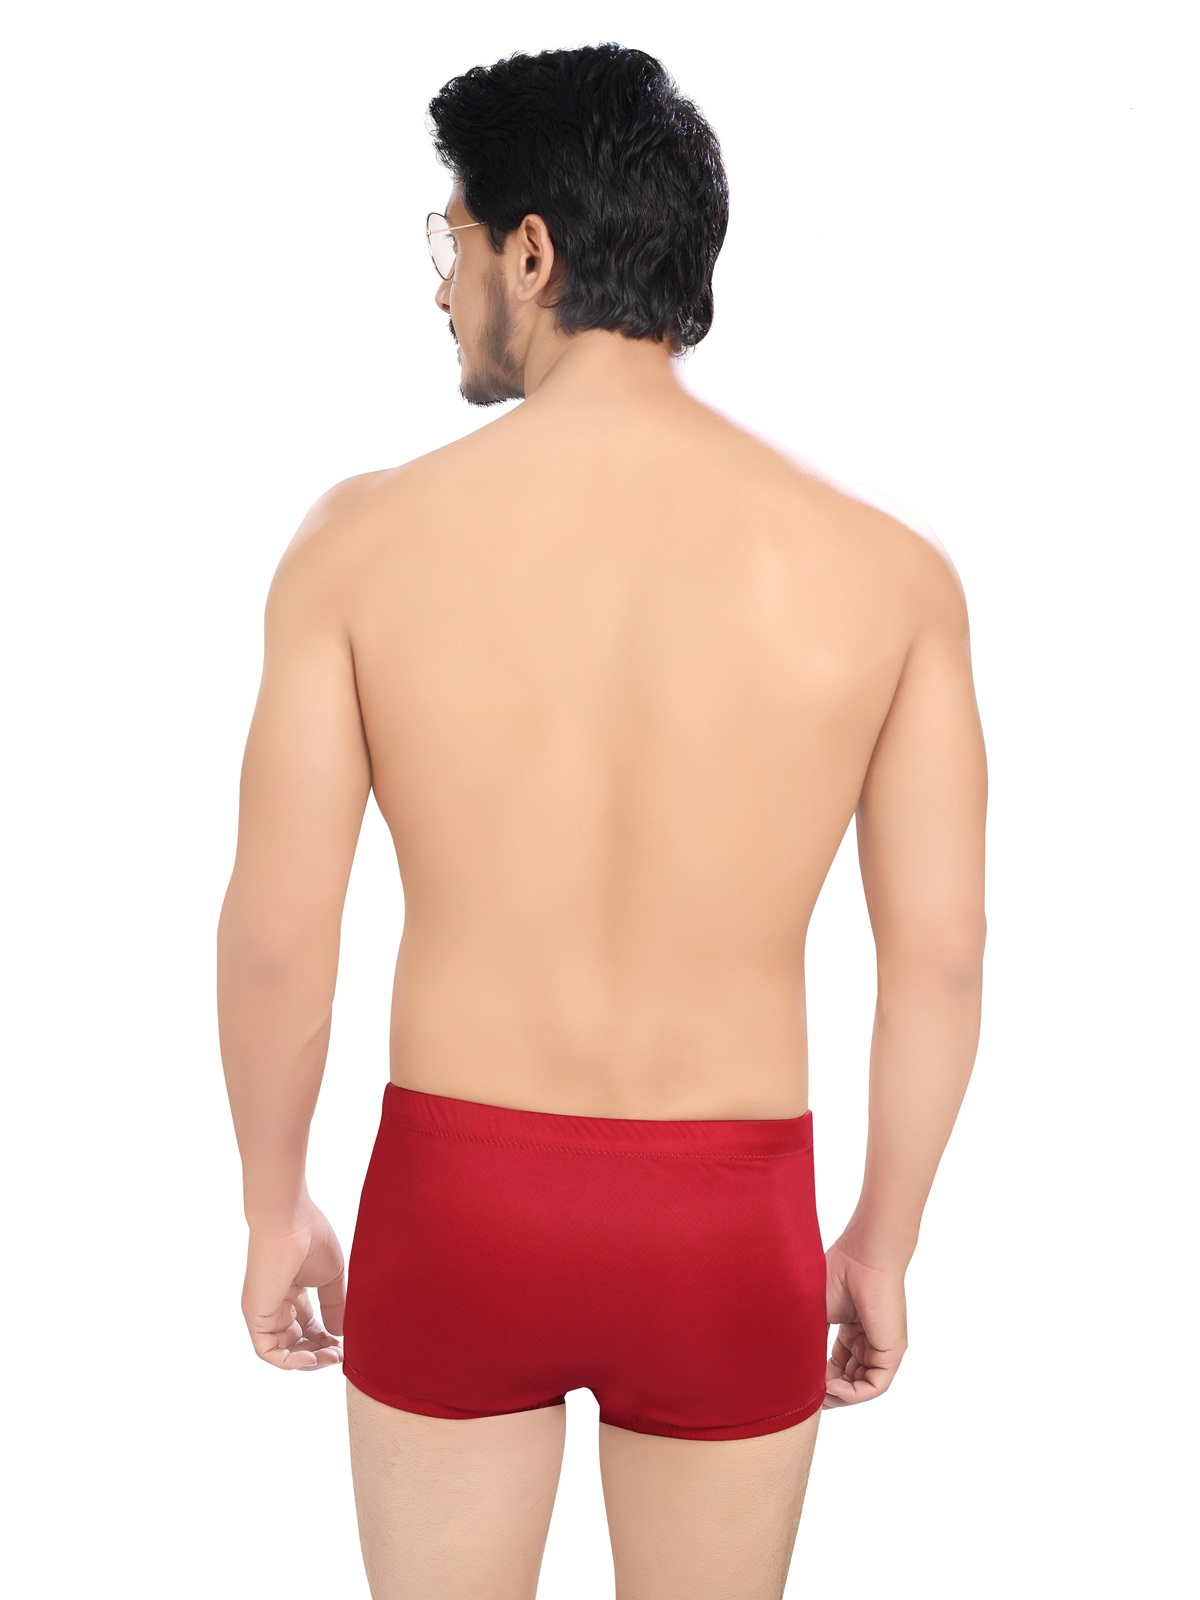 Enkay Champion Men's Solid Swimsuit (Pack Of 1)